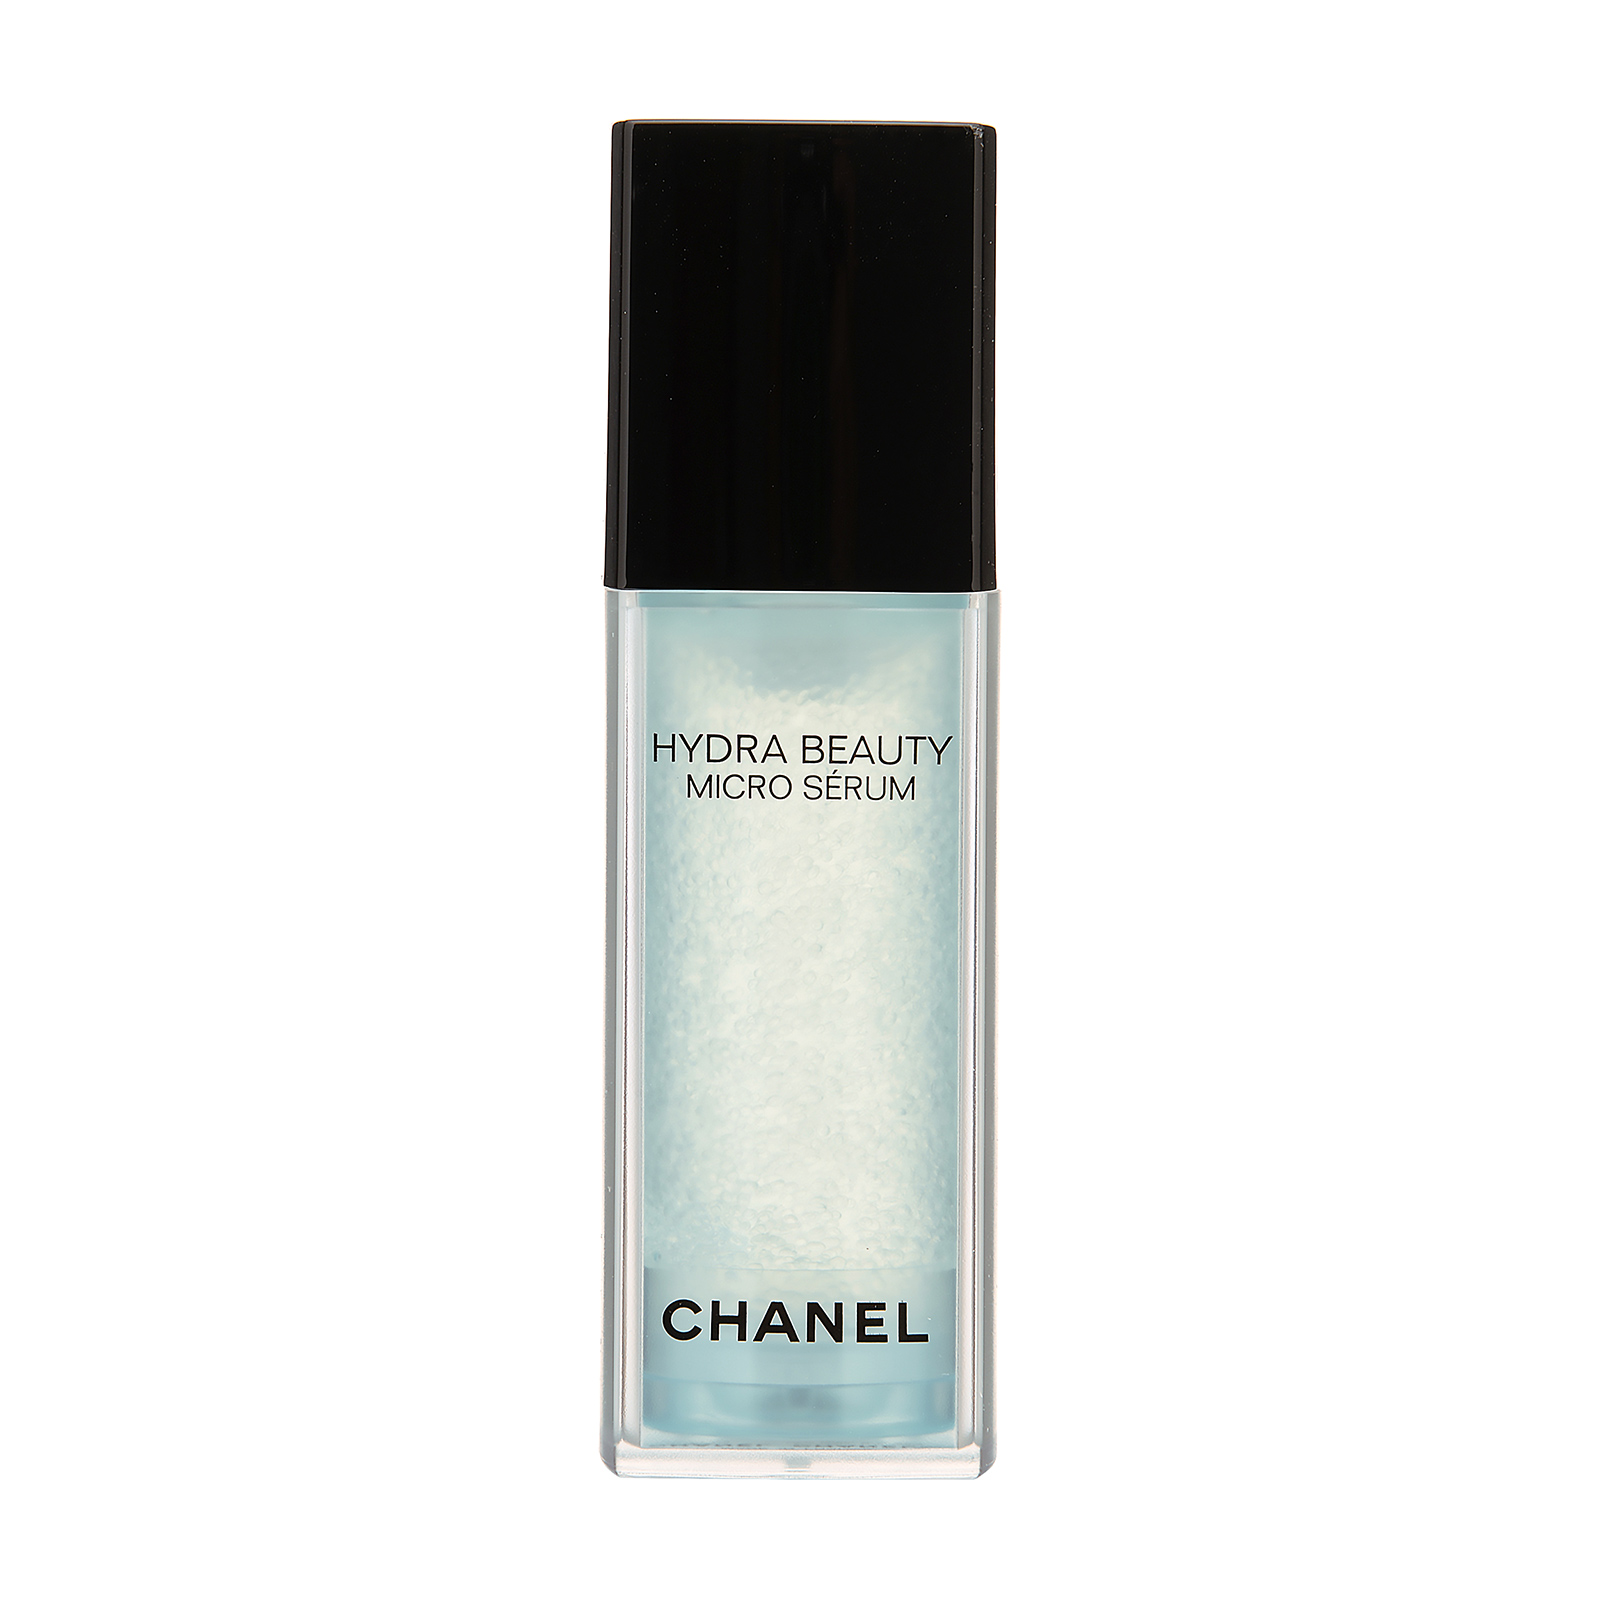 57ab219721 Details about Chanel Hydra Beauty Micro Serum 1oz, 30ml Skincare Plumping  Anti Aging Face